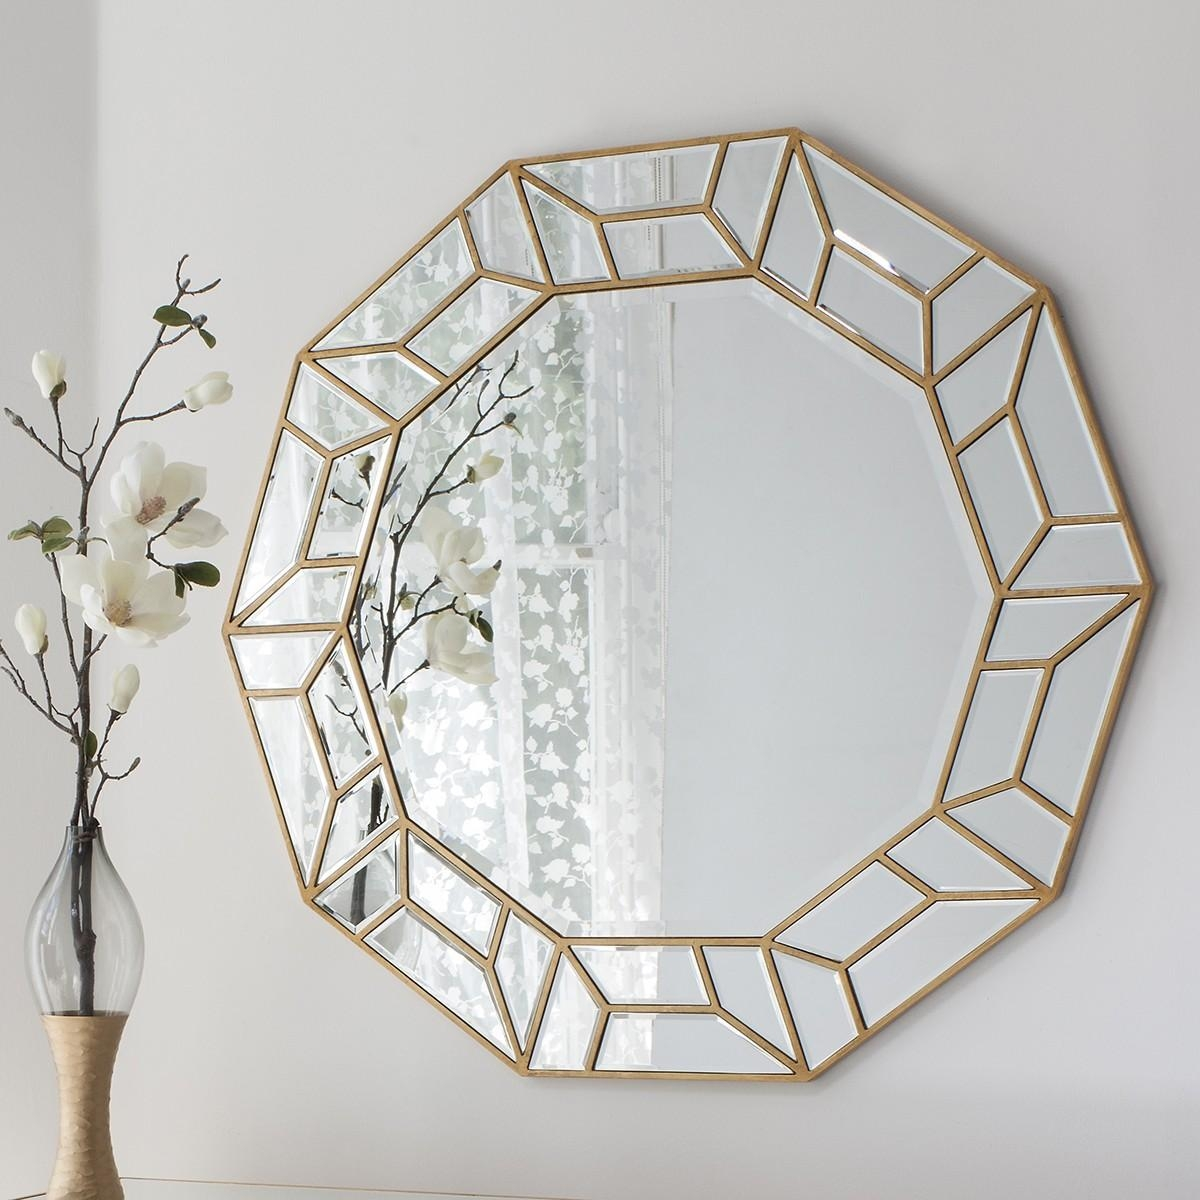 D'or Art Deco Mirror From £349 – Luxury Wall Mirrors | Ashden Road Inside Artdeco Mirrors (Image 14 of 20)